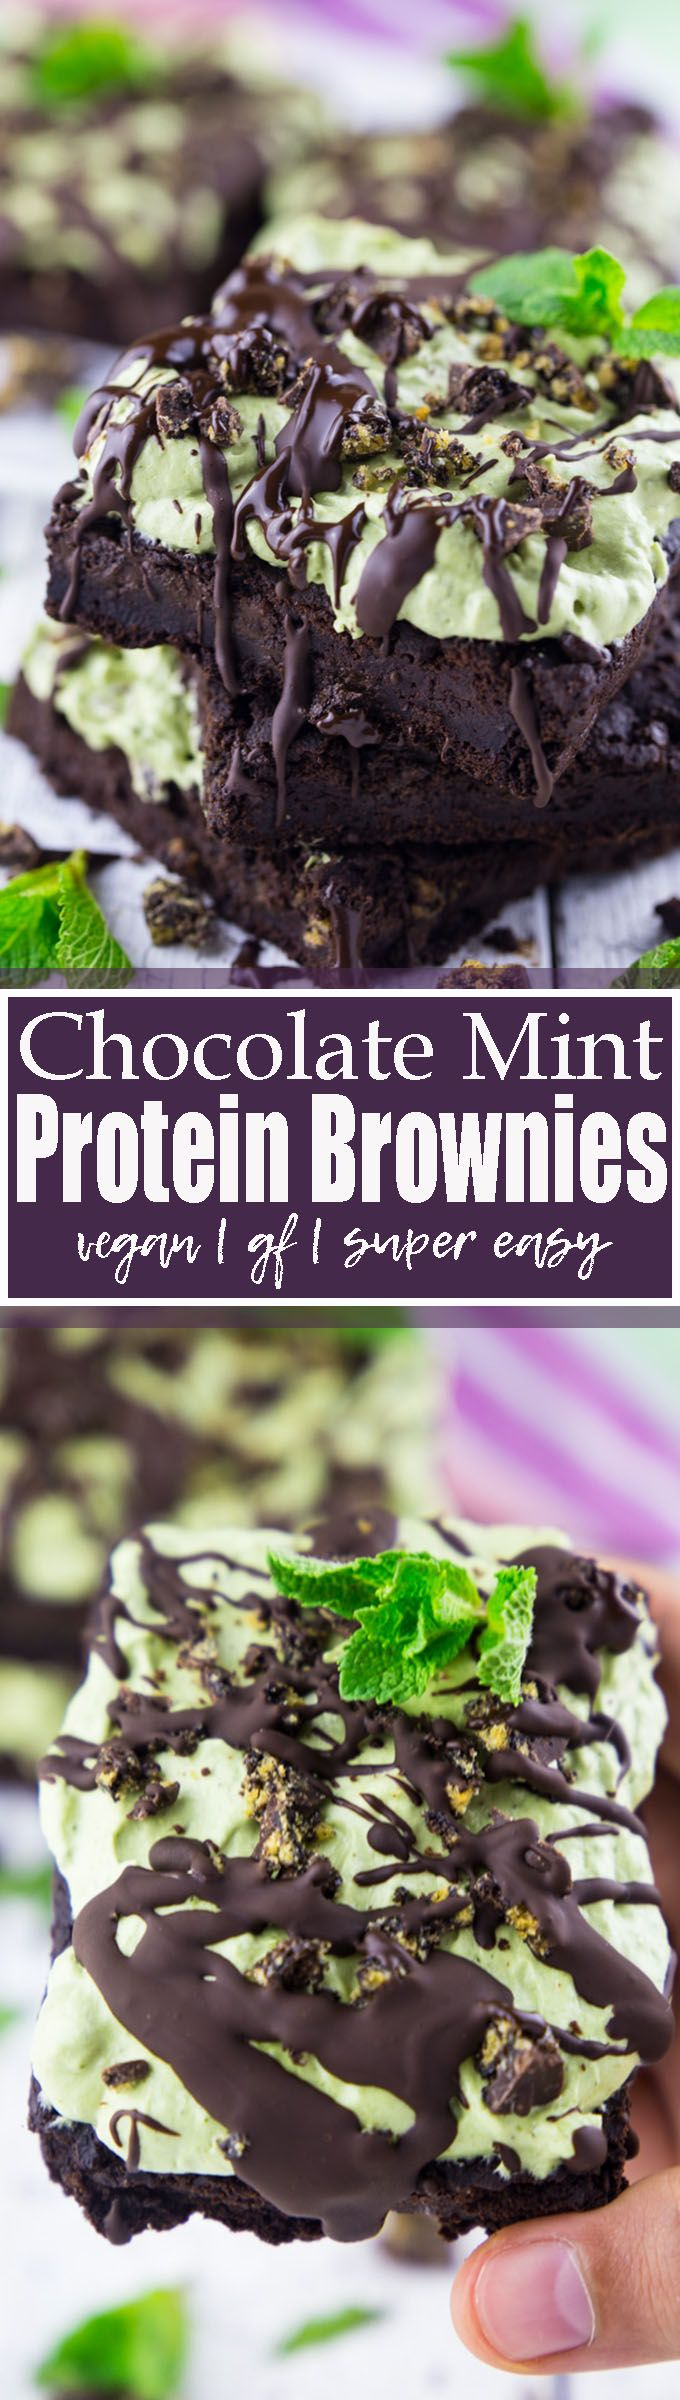 These protein brownies with chocolate mint topping are not only super delicious but also incredibly easy to make! And they're packed with protein and healthy ingredients! Plus, they're vegan and gluten-free. I can't get enough of these vegan chocolate mint brownies. Vegan baking can be so easy! Find more vegan recipes at veganheaven.org <3